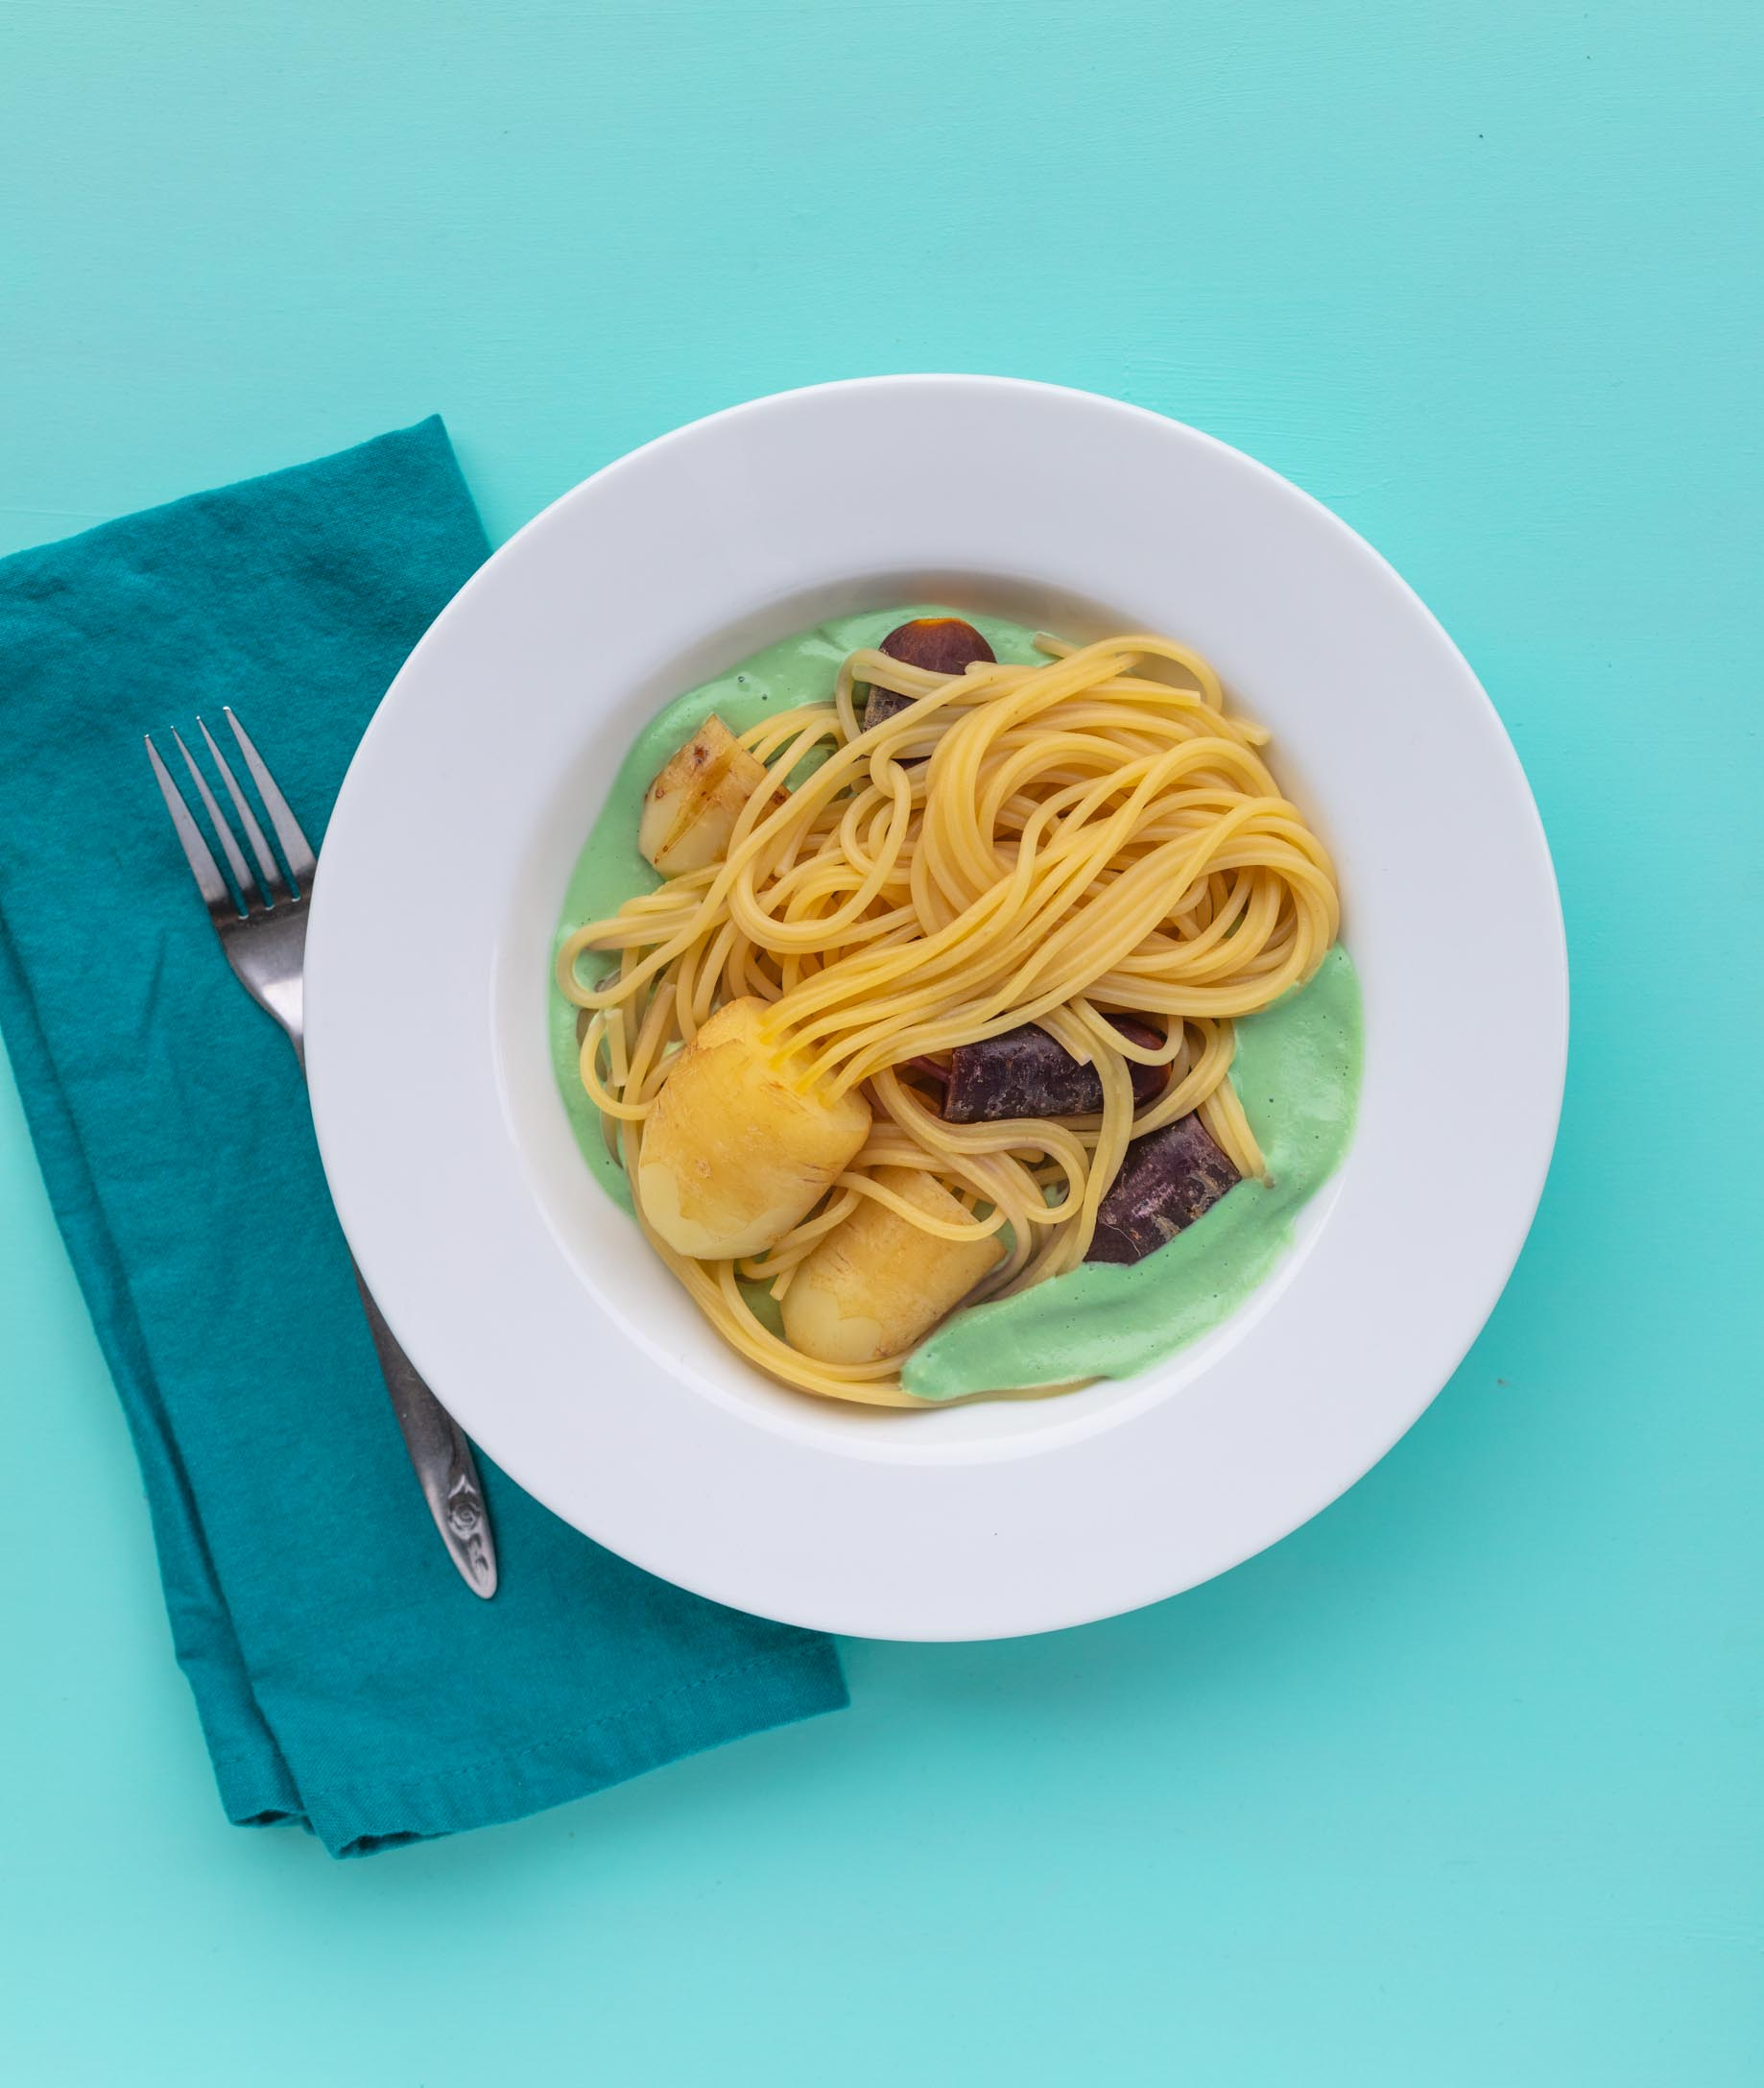 Spaghetti Carrot Squid in a sea of teal cashew cream sauce